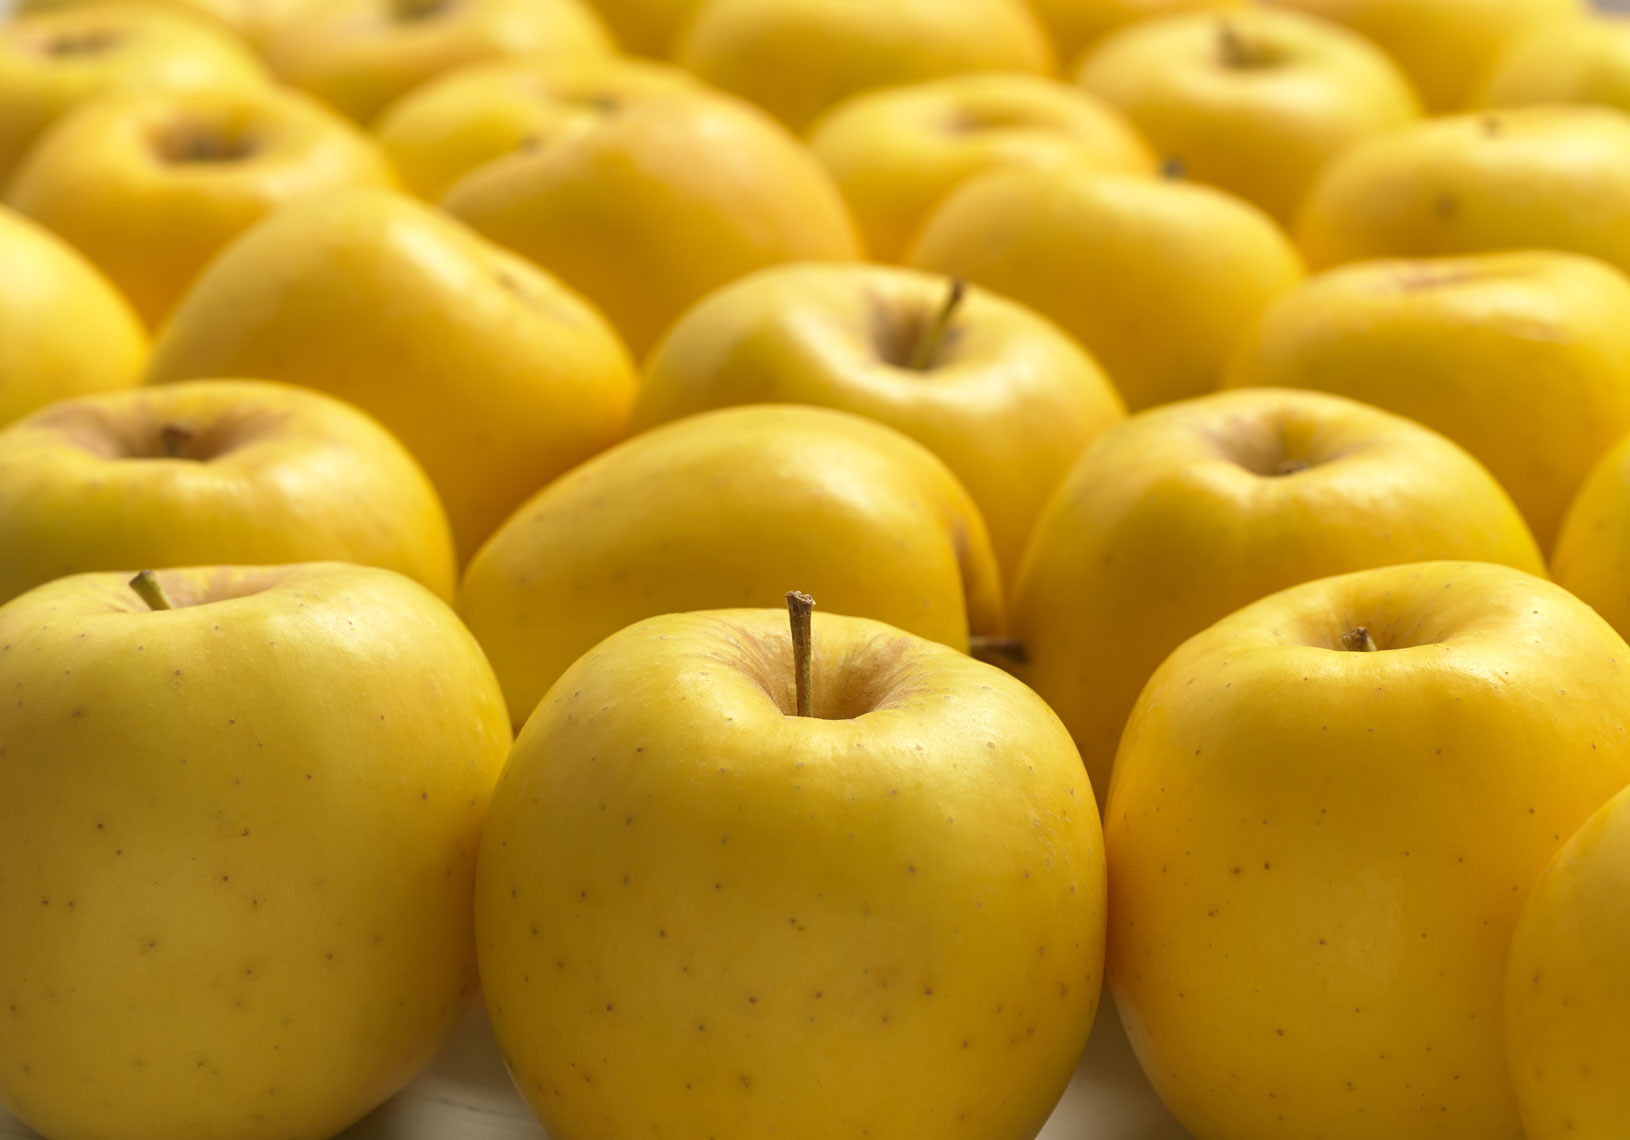 Yellow apples/many apples lined up in rows/ food photography